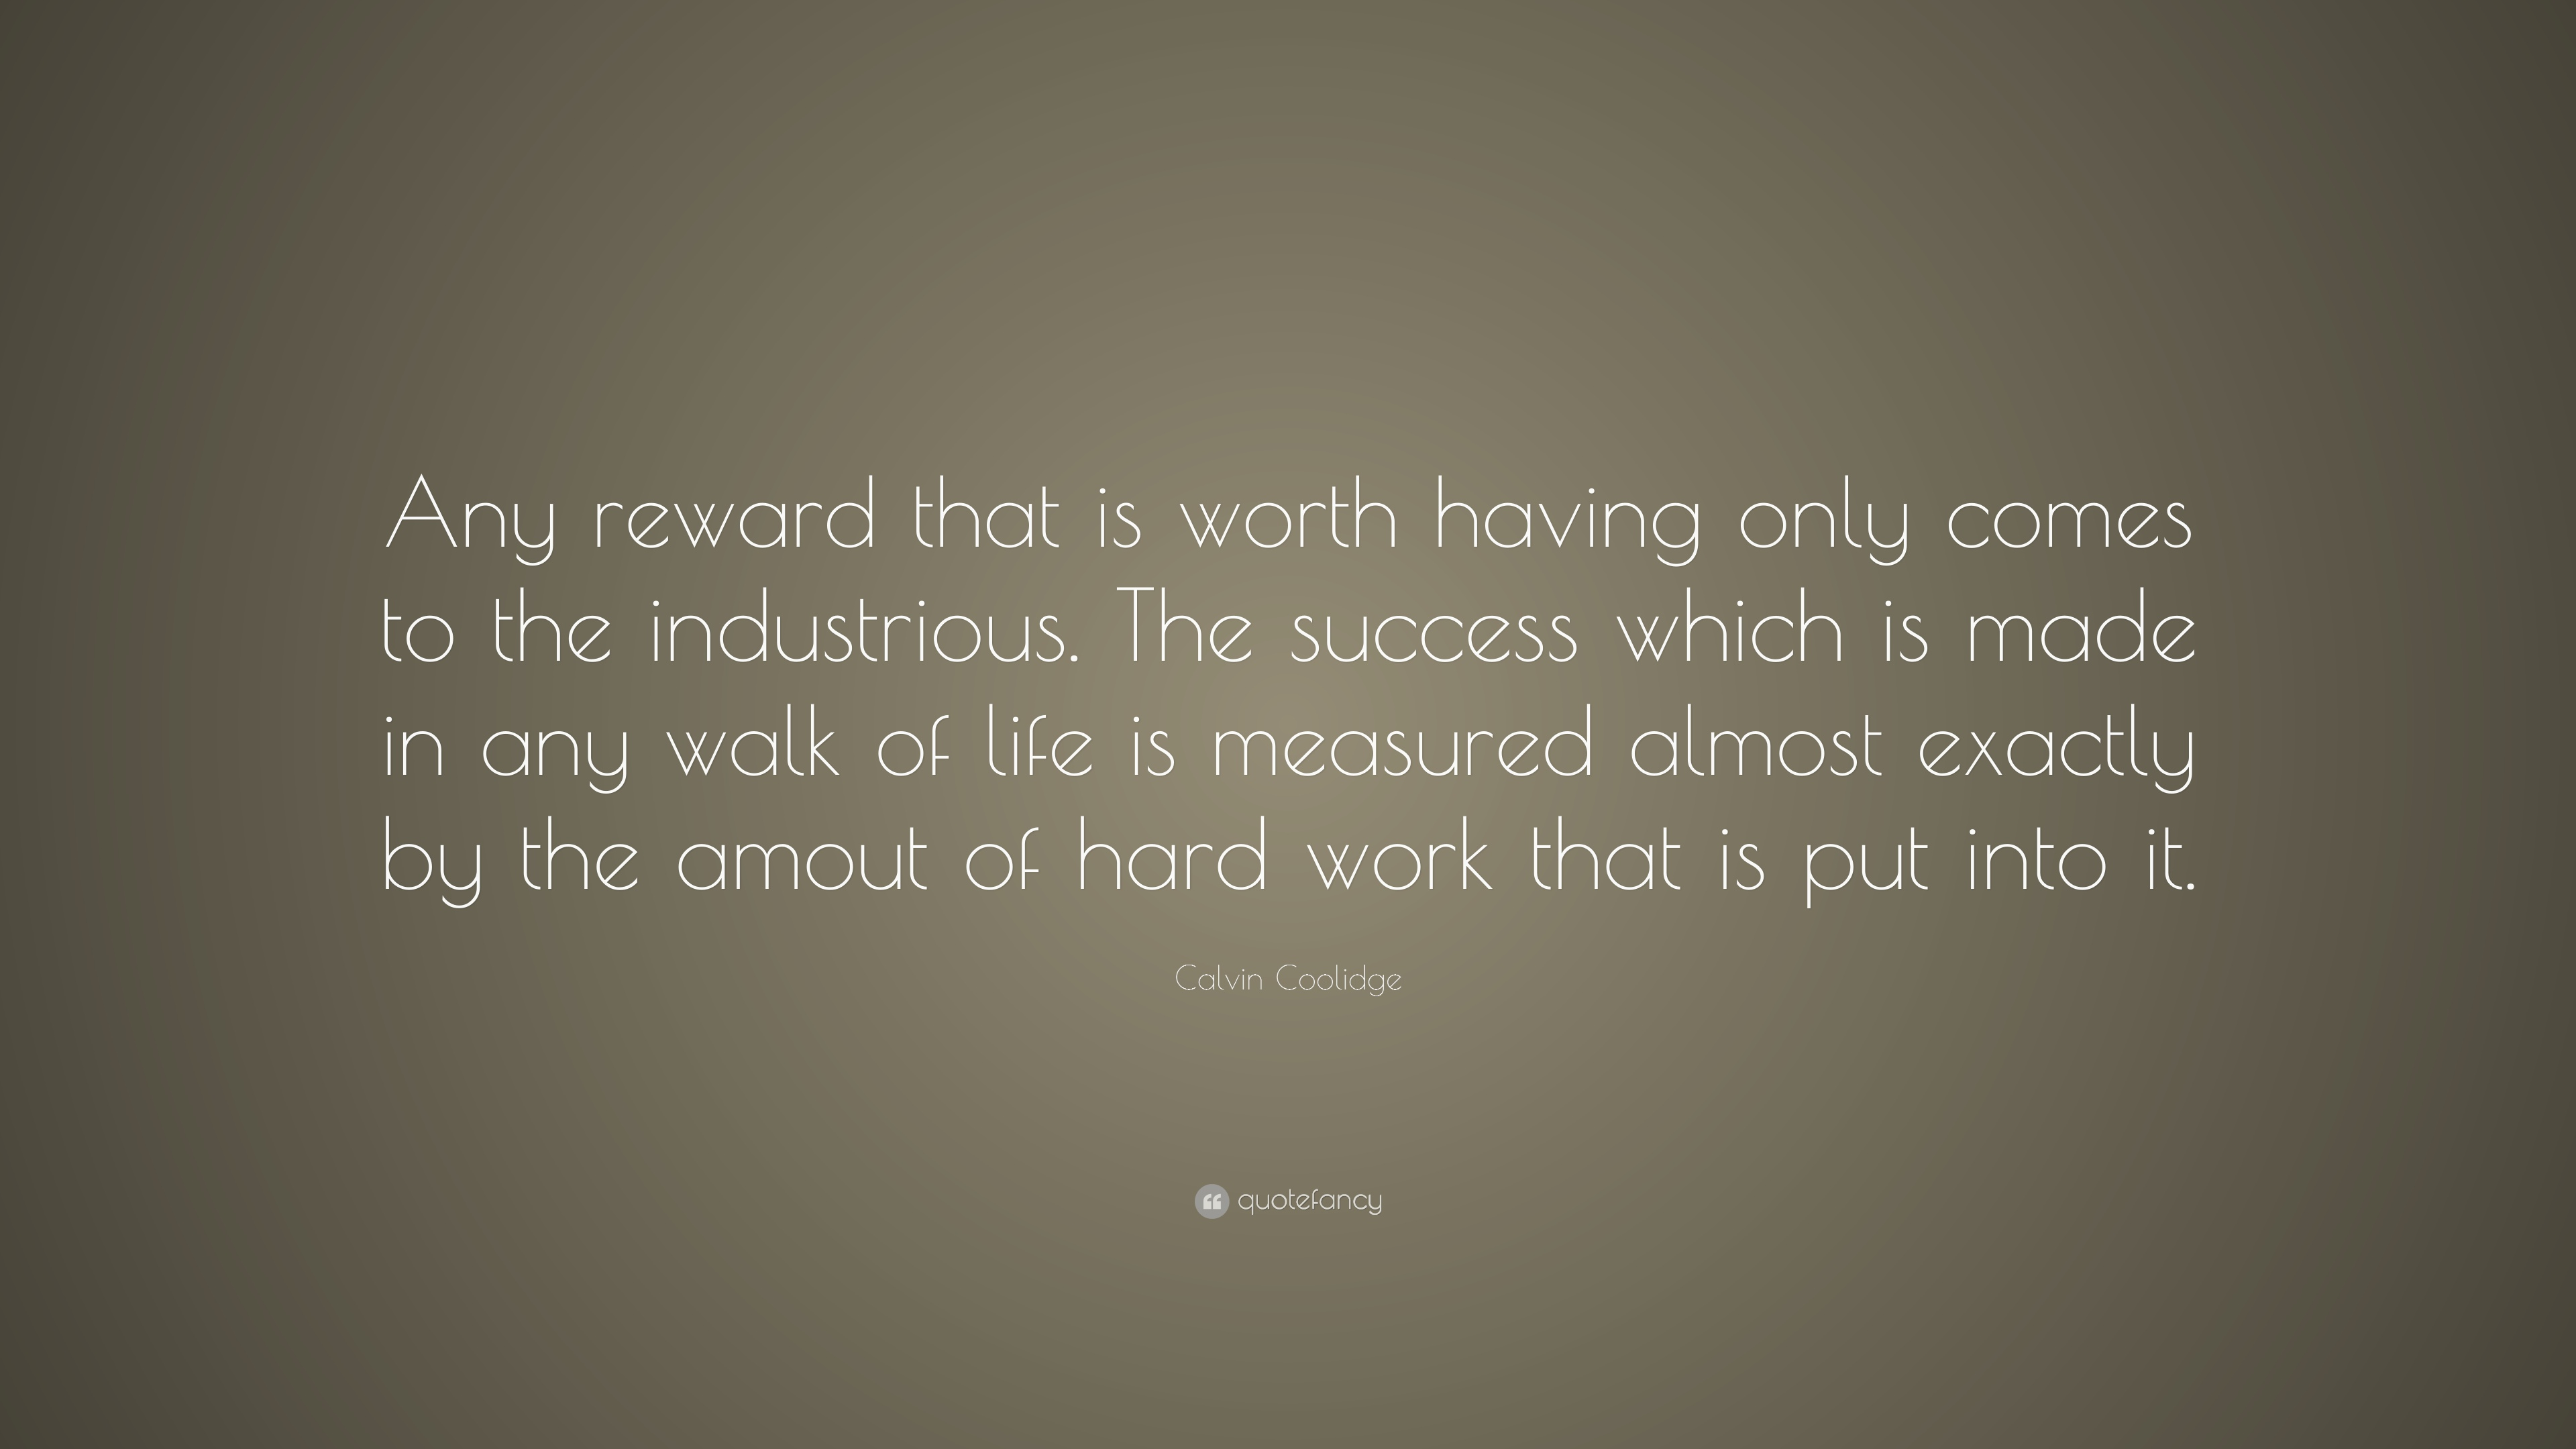 Wallpaper Having Quotes Calvin Coolidge Quote Any Reward That Is Worth Having